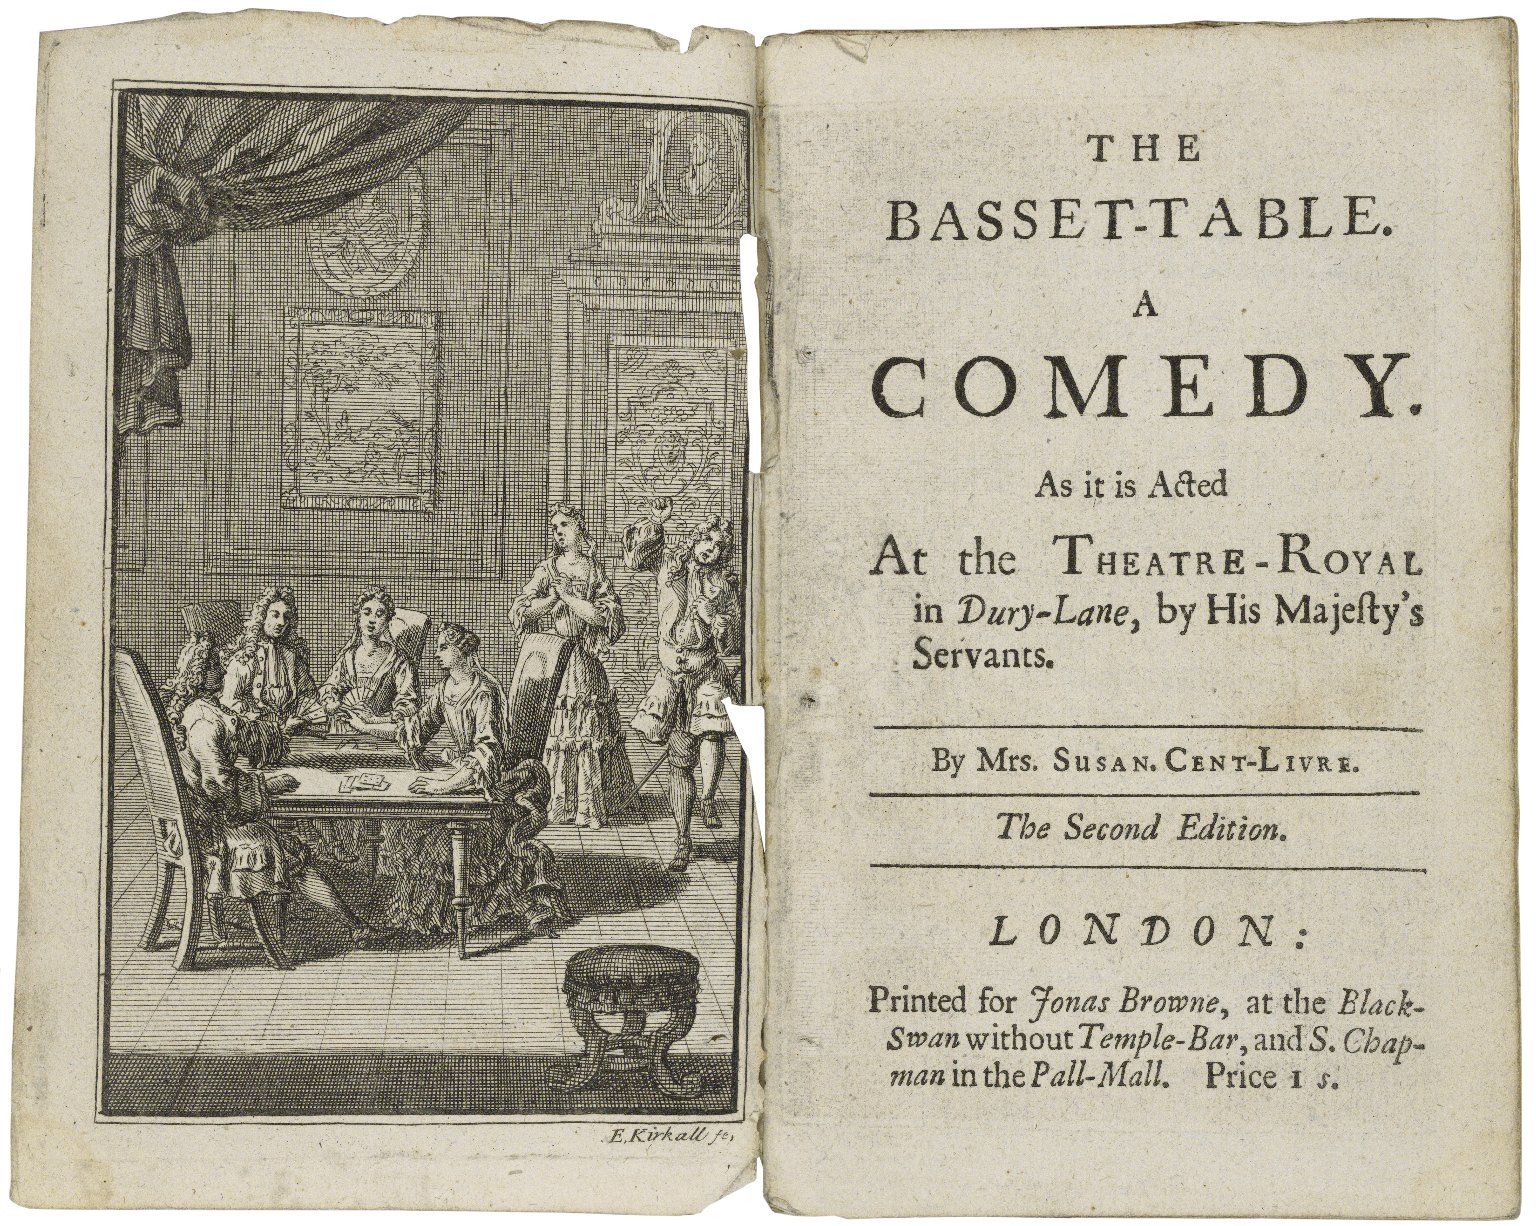 The basset-table. A comedy. As it is acted at the Theatre-Royal in Dury[sic]-Lane, by His Majesty's servants. By Mrs. Susan. Cent-Livre.